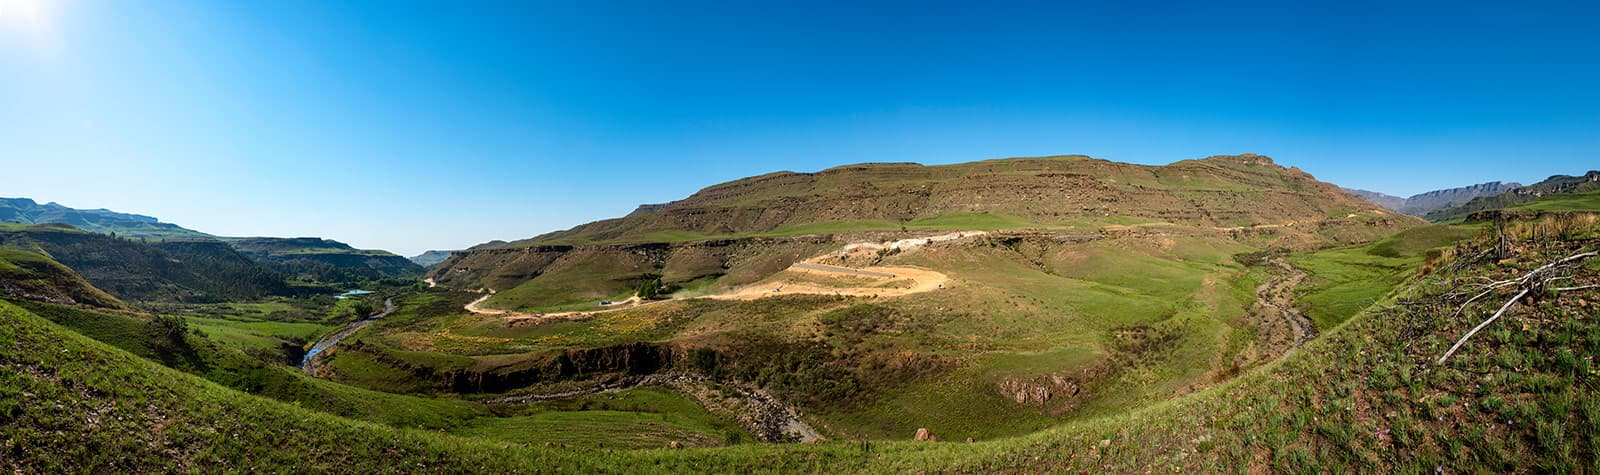 Construction photography and videography of Sani Pass road upgrade